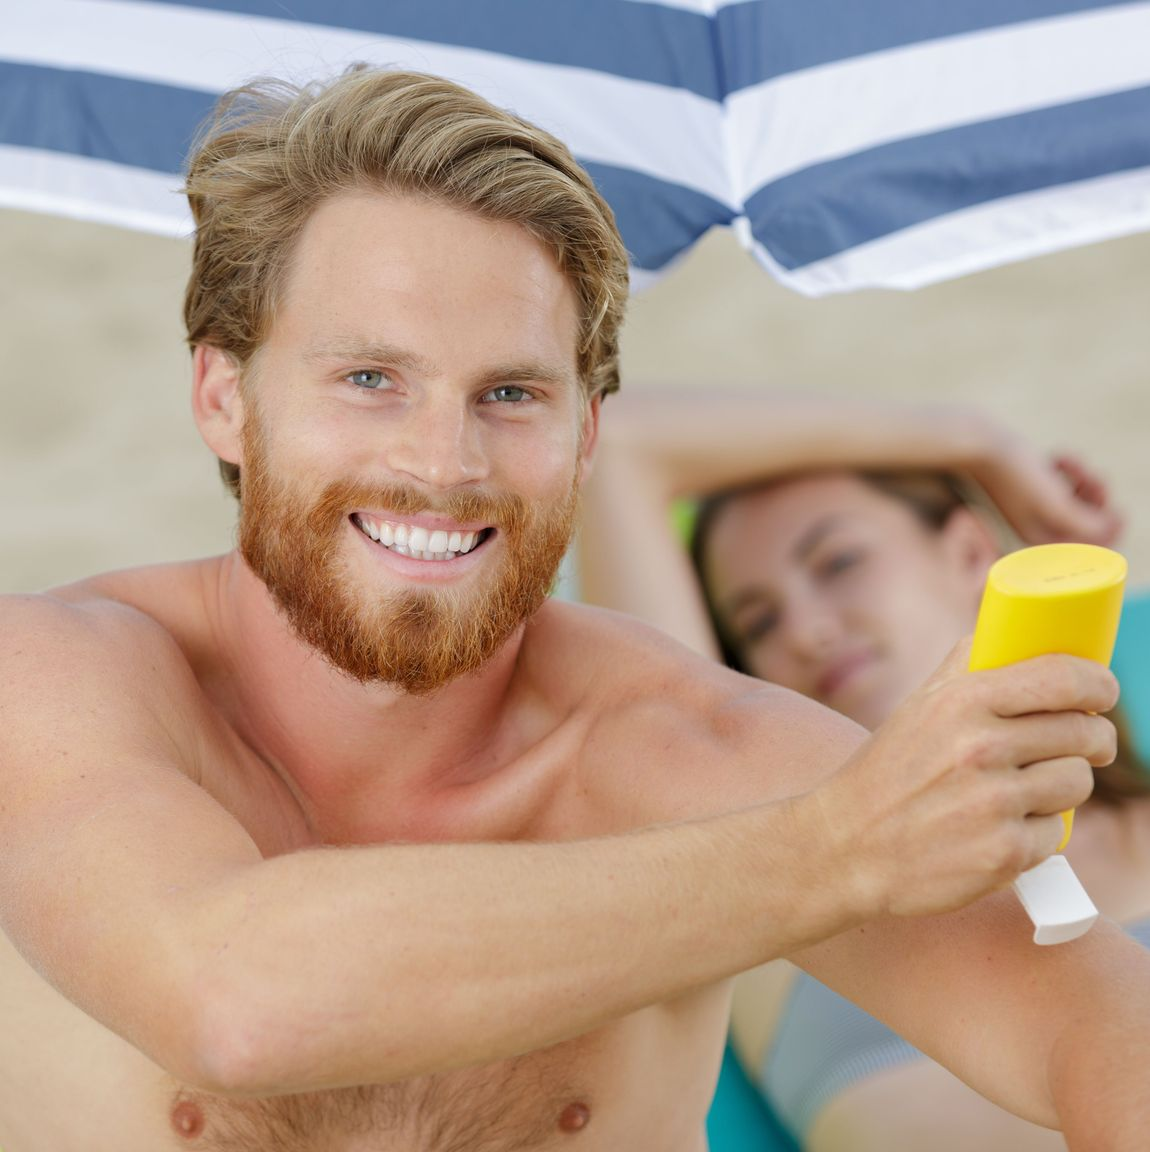 Man applying sun lotion at the beach